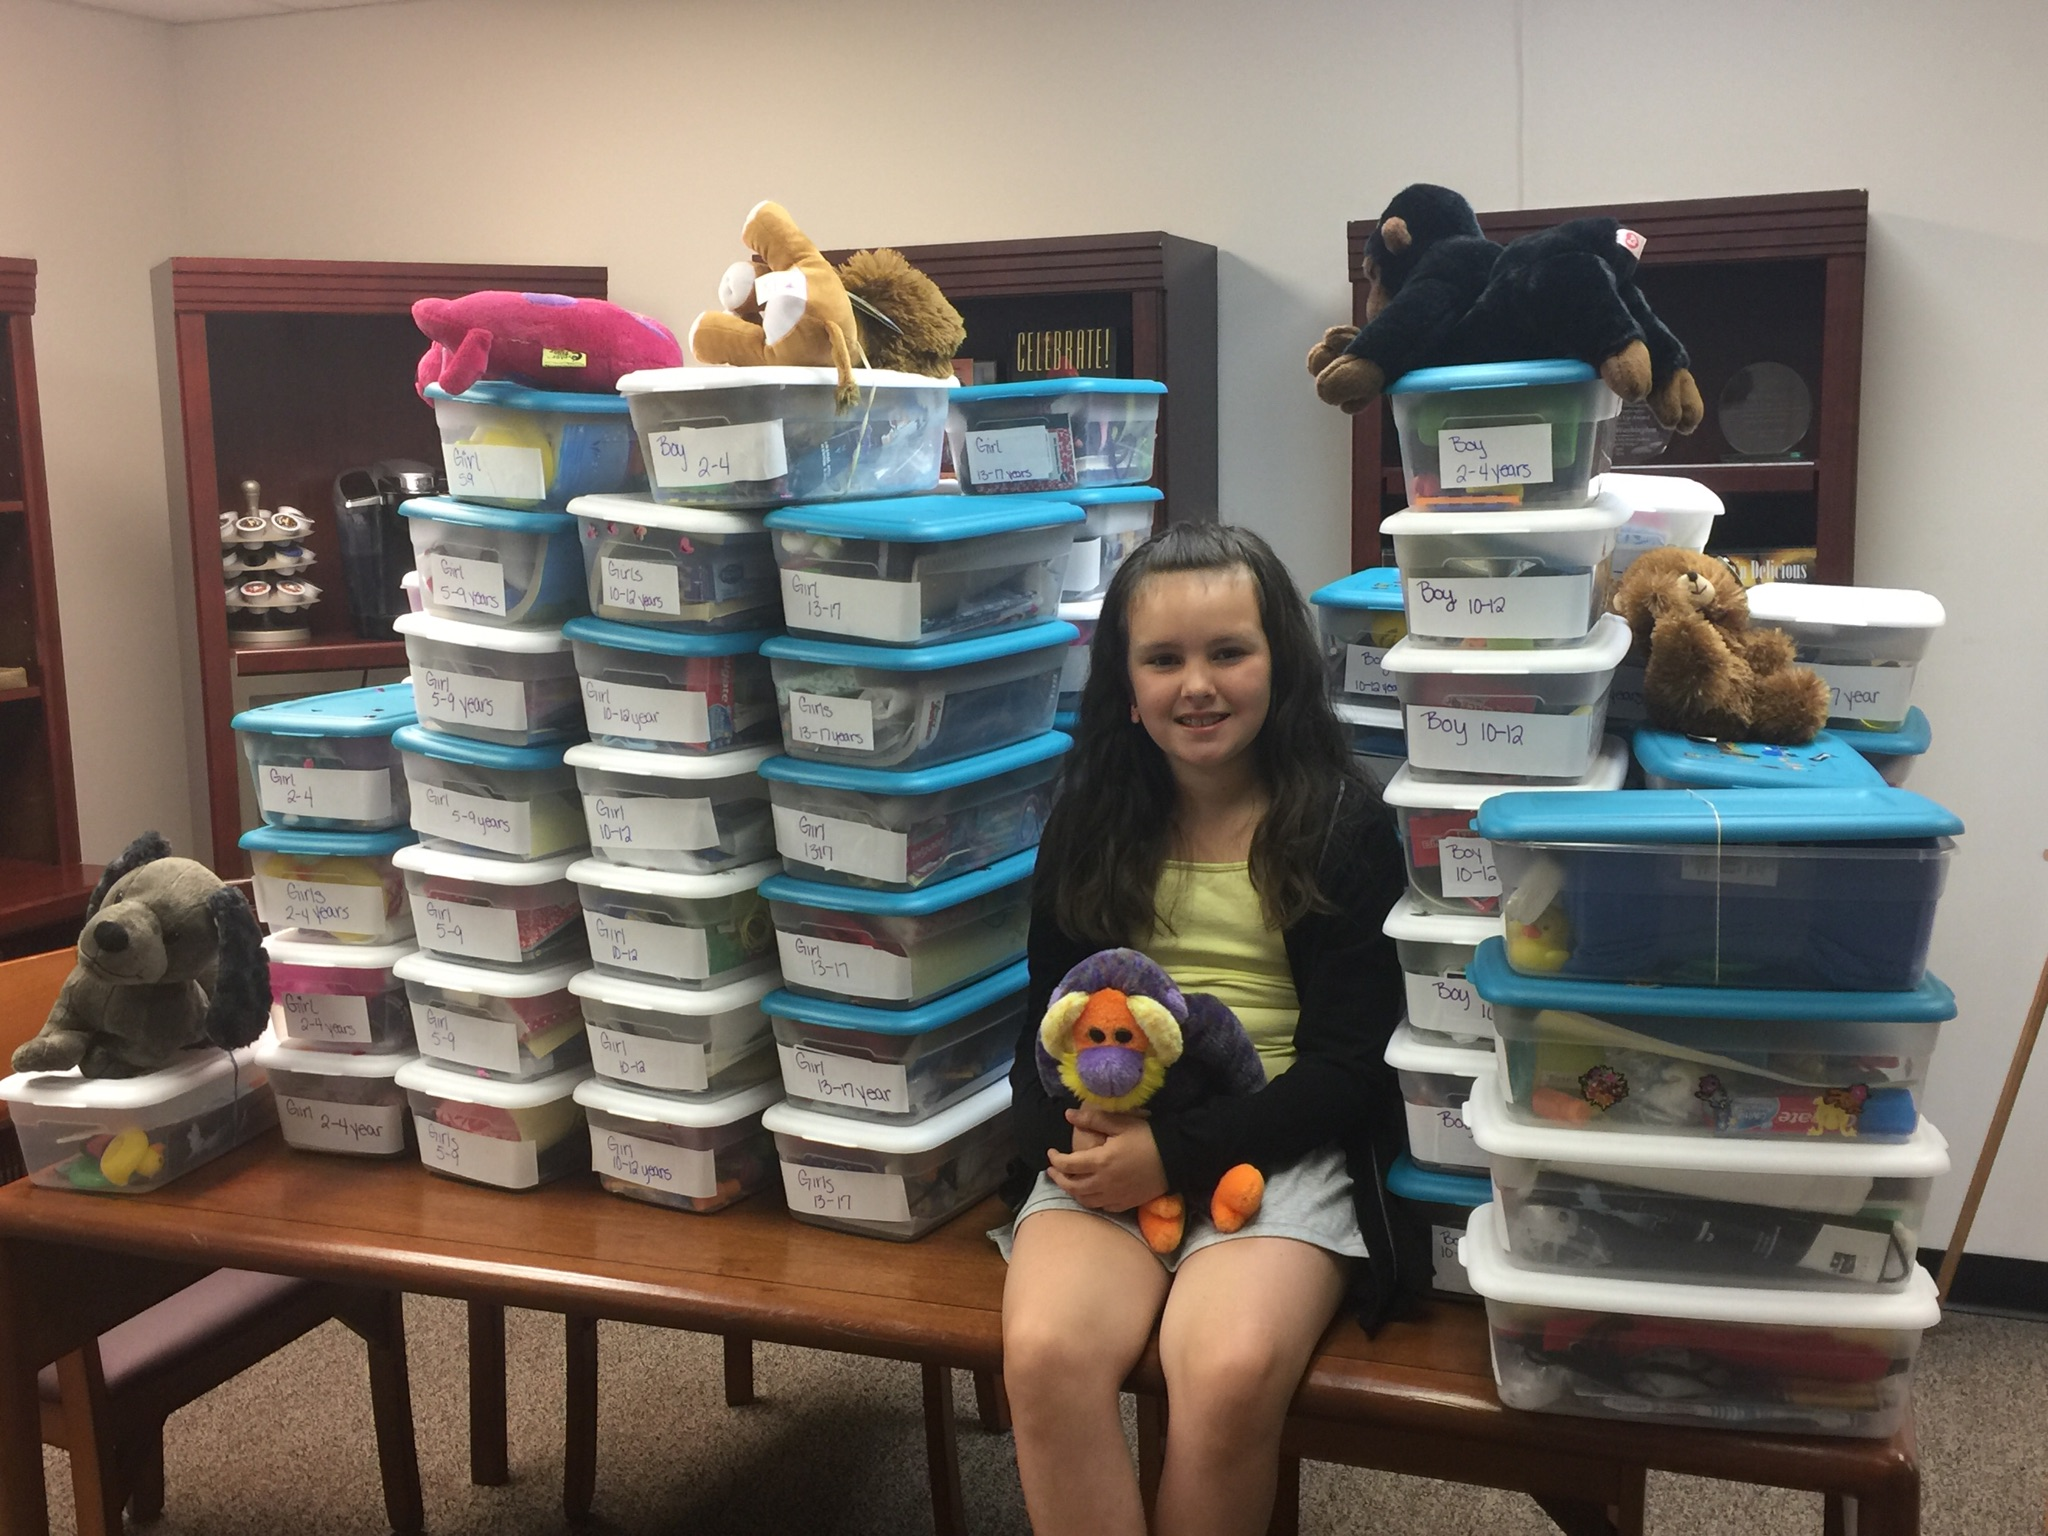 A sweet young girl named Wynona and her girl scout troop collected 80 Welcome Boxes for children in foster care.